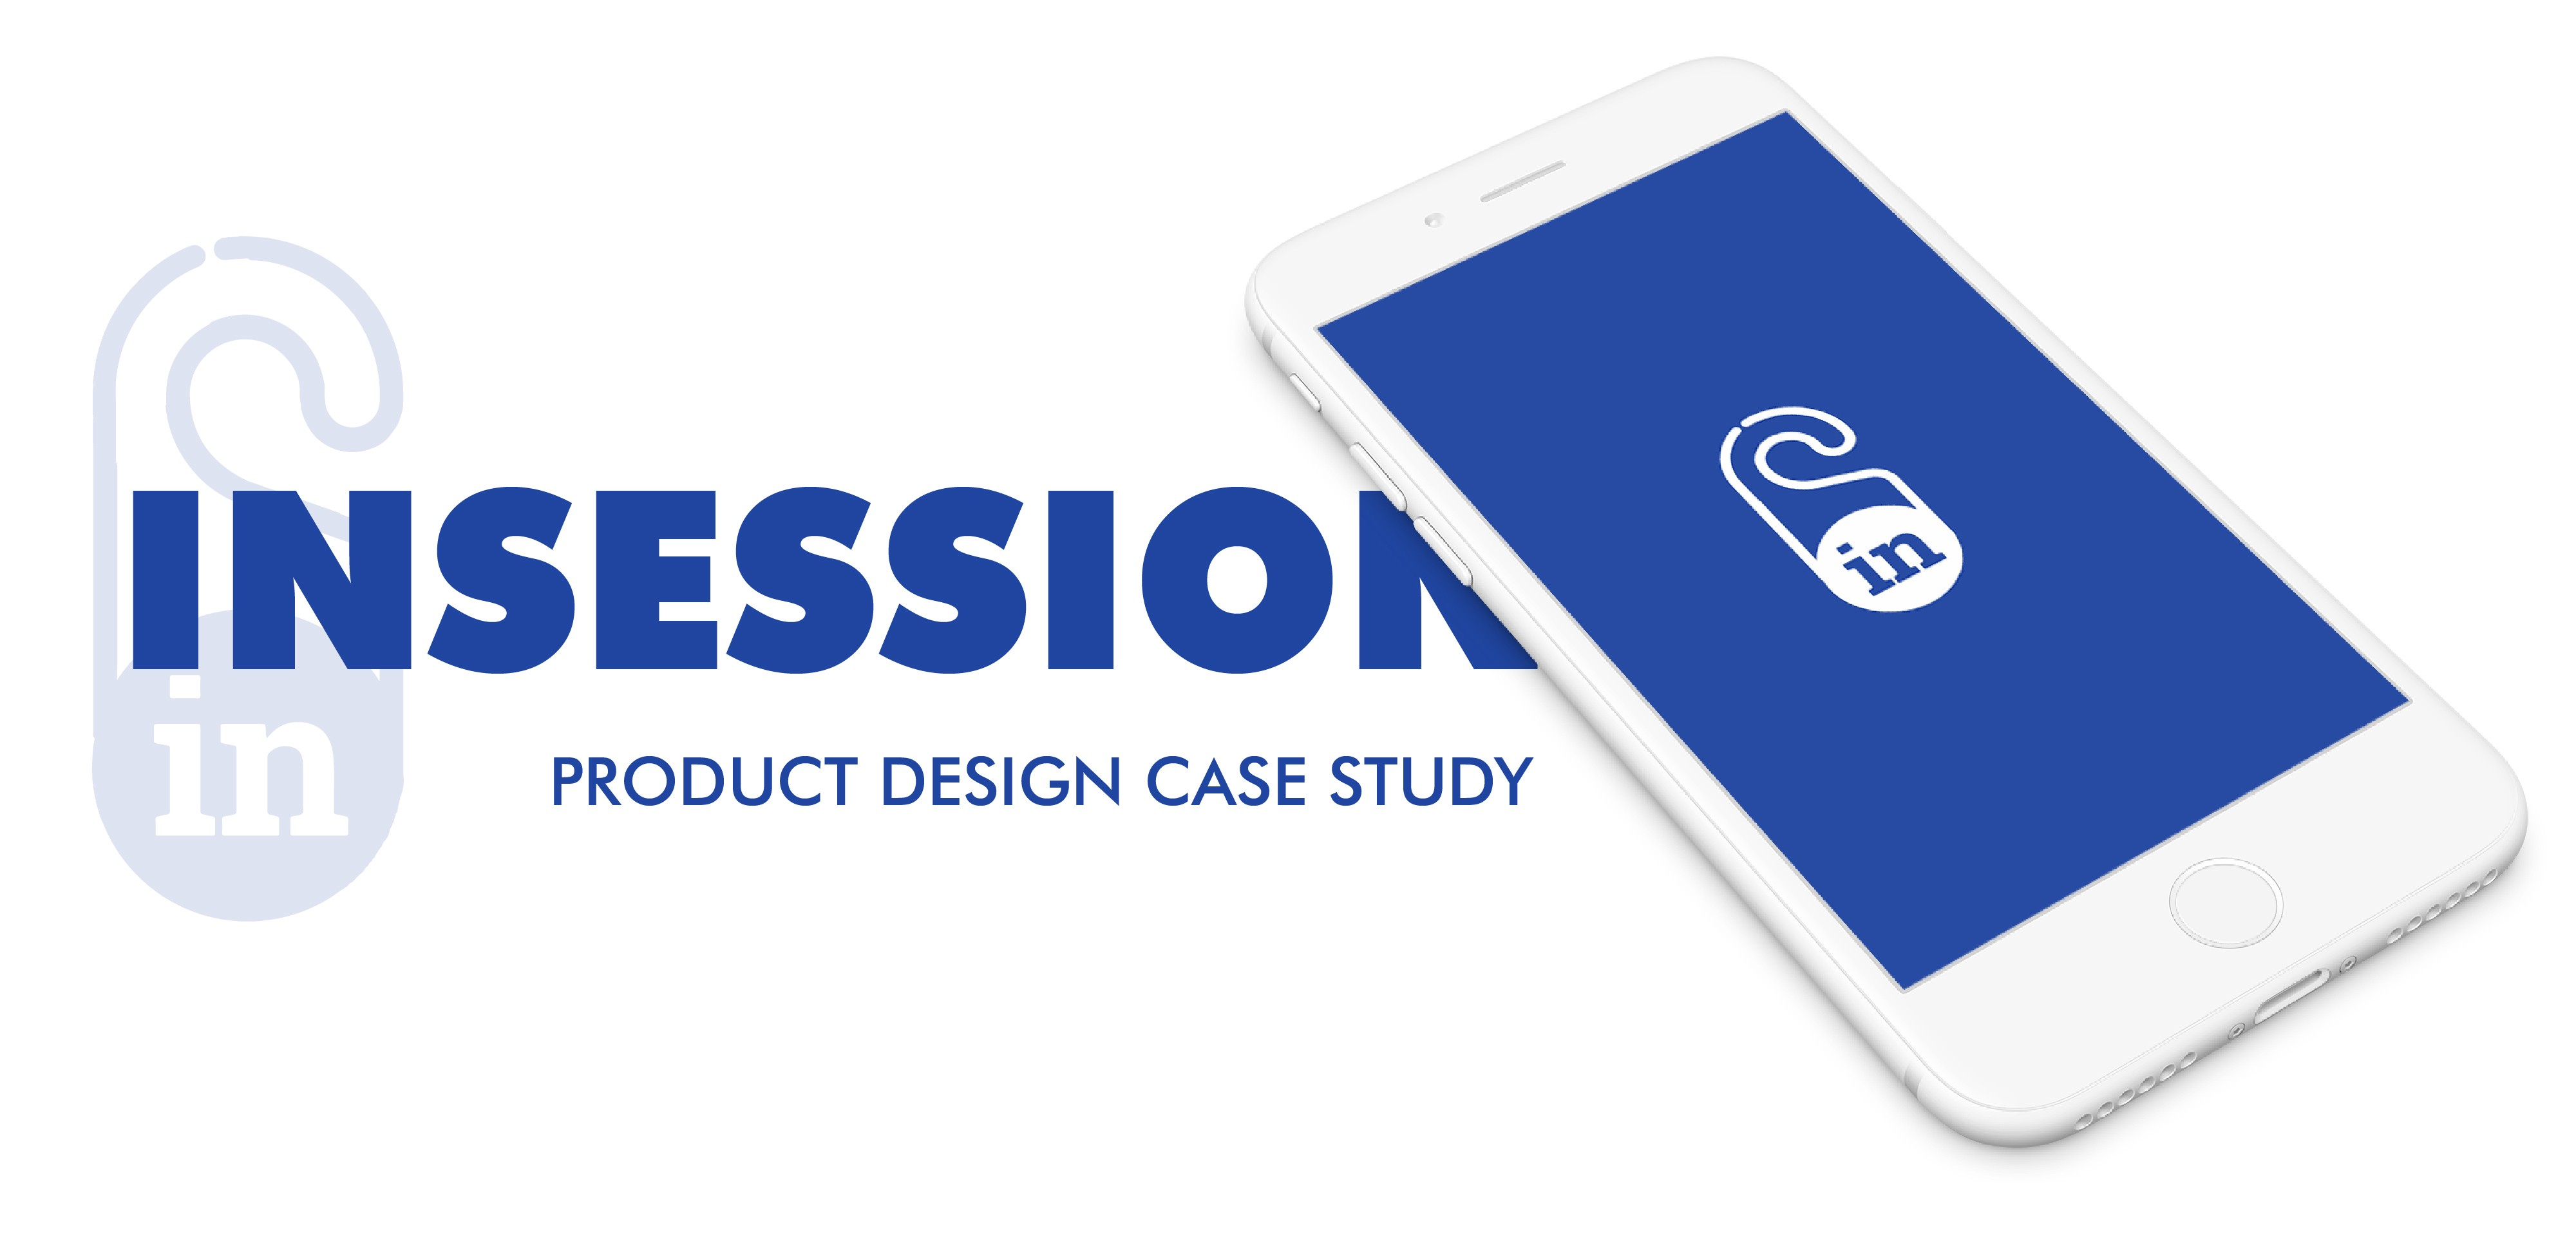 Insession: Product Design Case Study - UX Planet